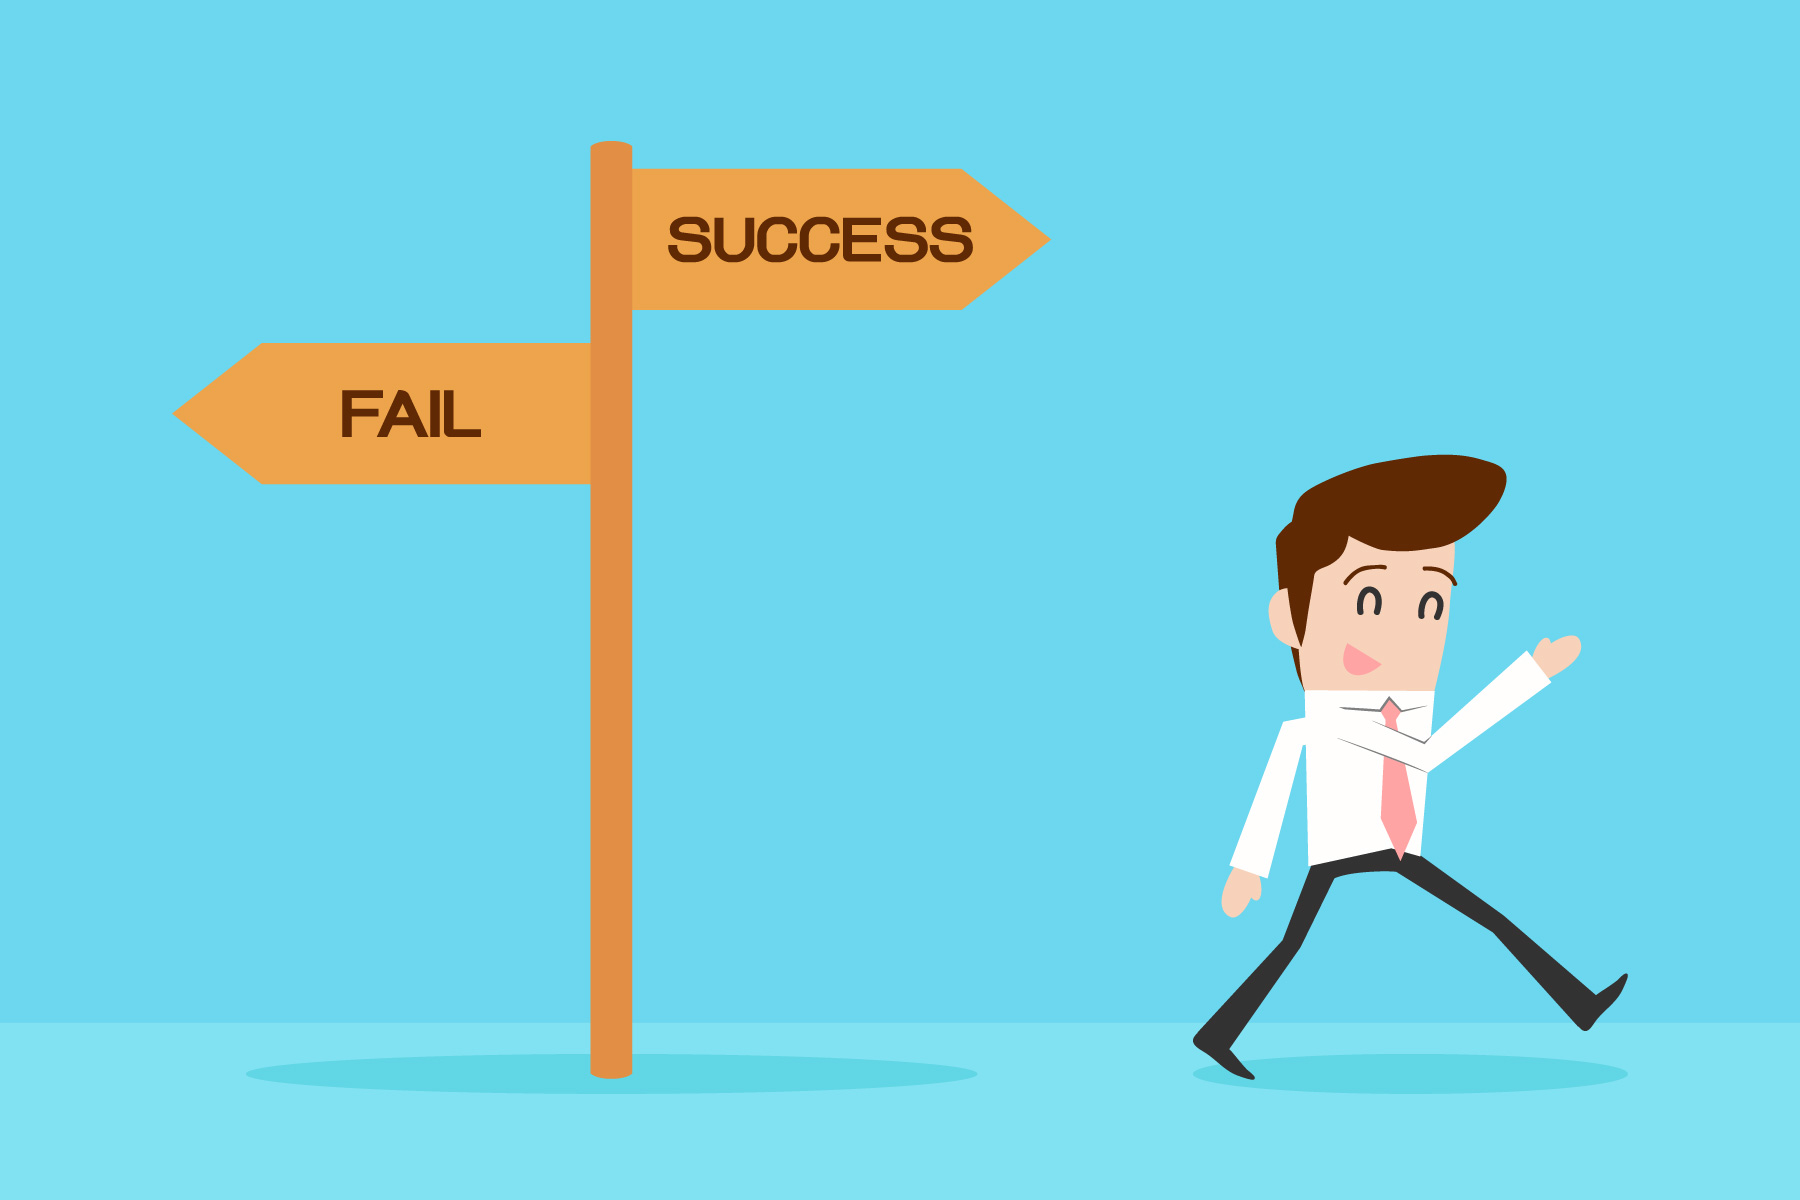 A cartoon man faces two directional signs: one toward success and the other toward failure